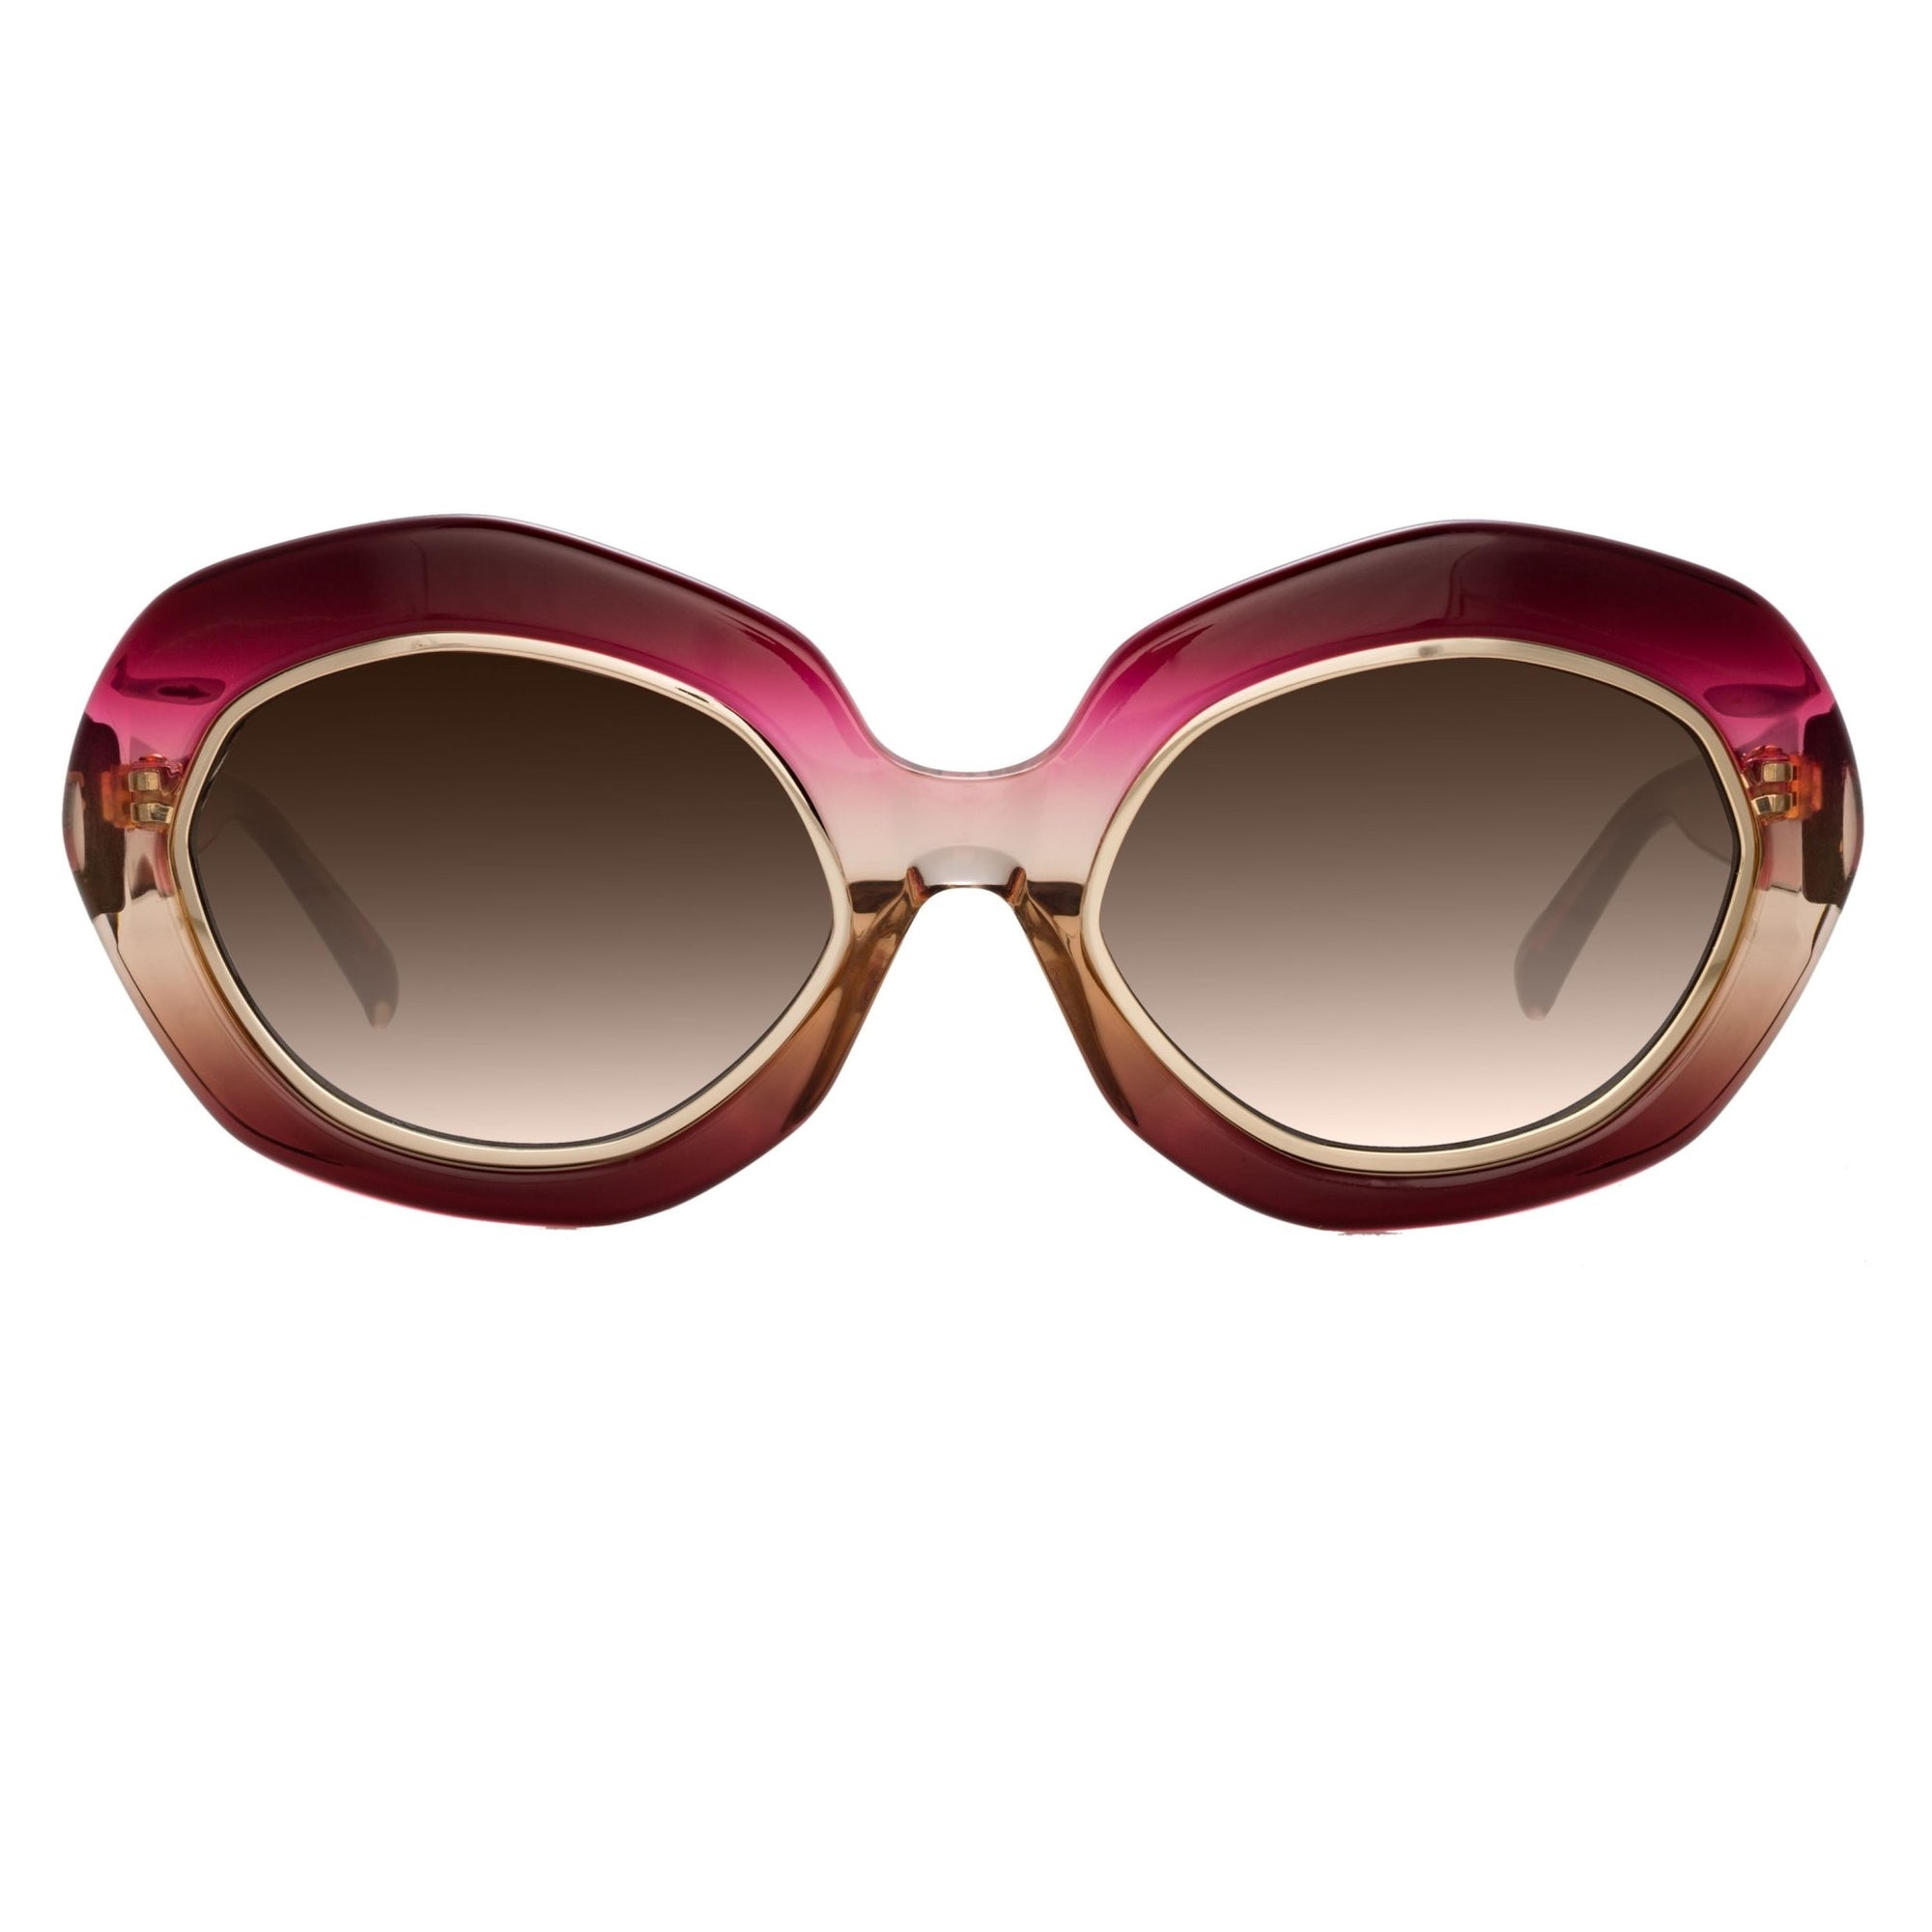 Erdem Women Sunglasses Oversized Pink Gold with Brown Graduated Lenses EDM33C1SUN - Watches & Crystals